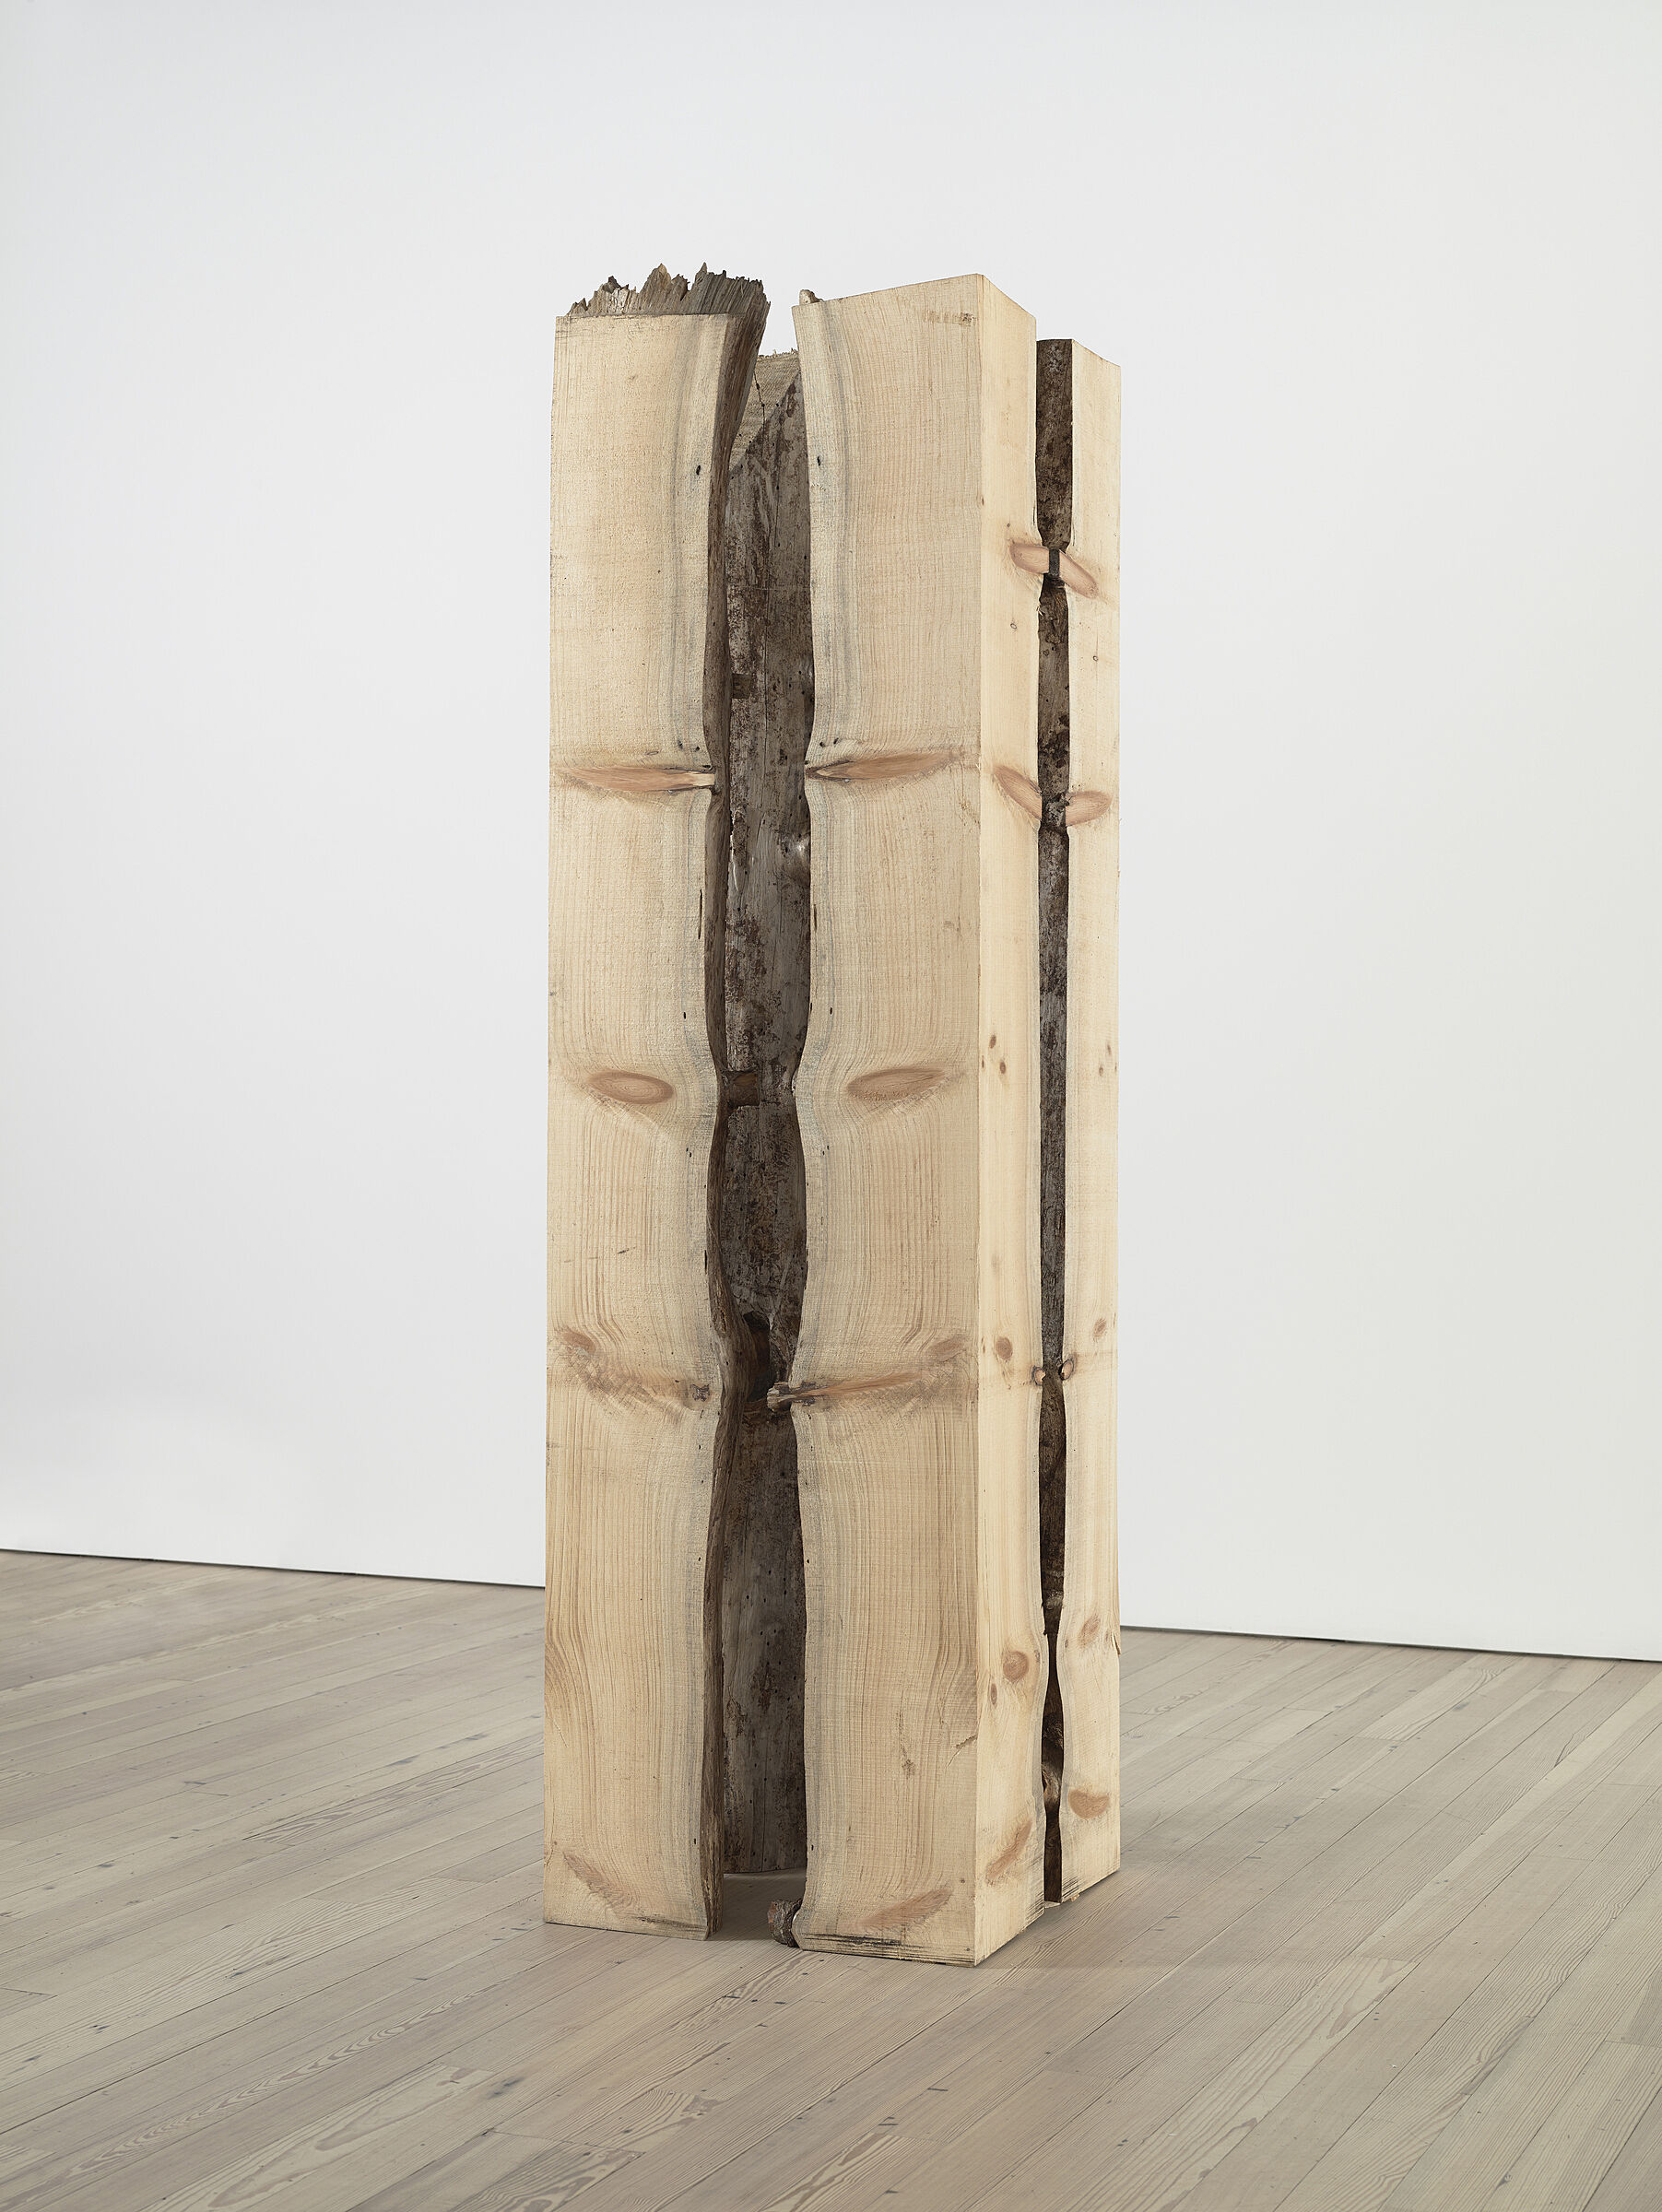 A wooden sculpture by Virginia Overton at the Whitney Museum.